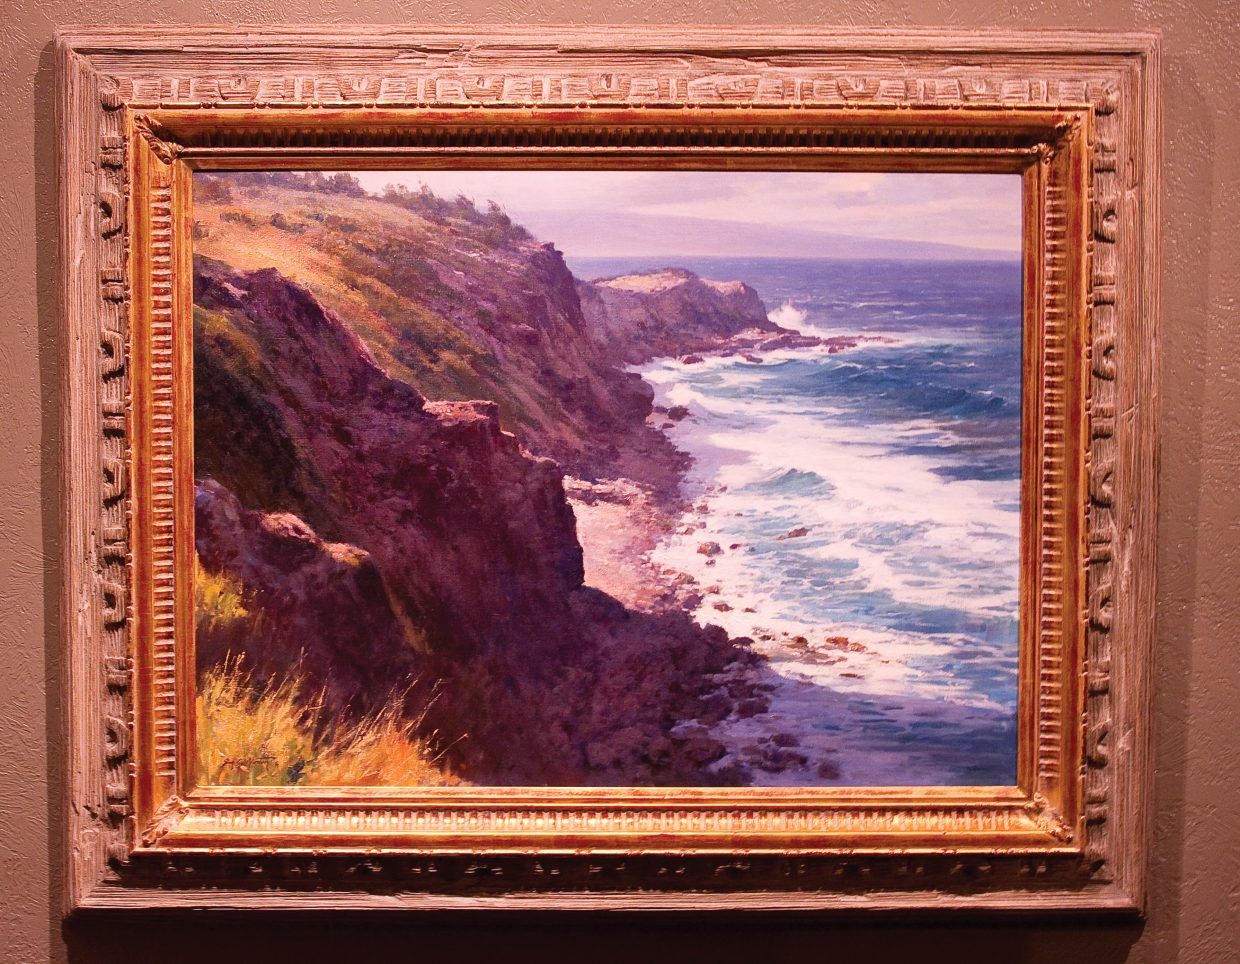 Utah-based Jim Norton is showing this painting and others at the Steamboat Art Museum until April 10.